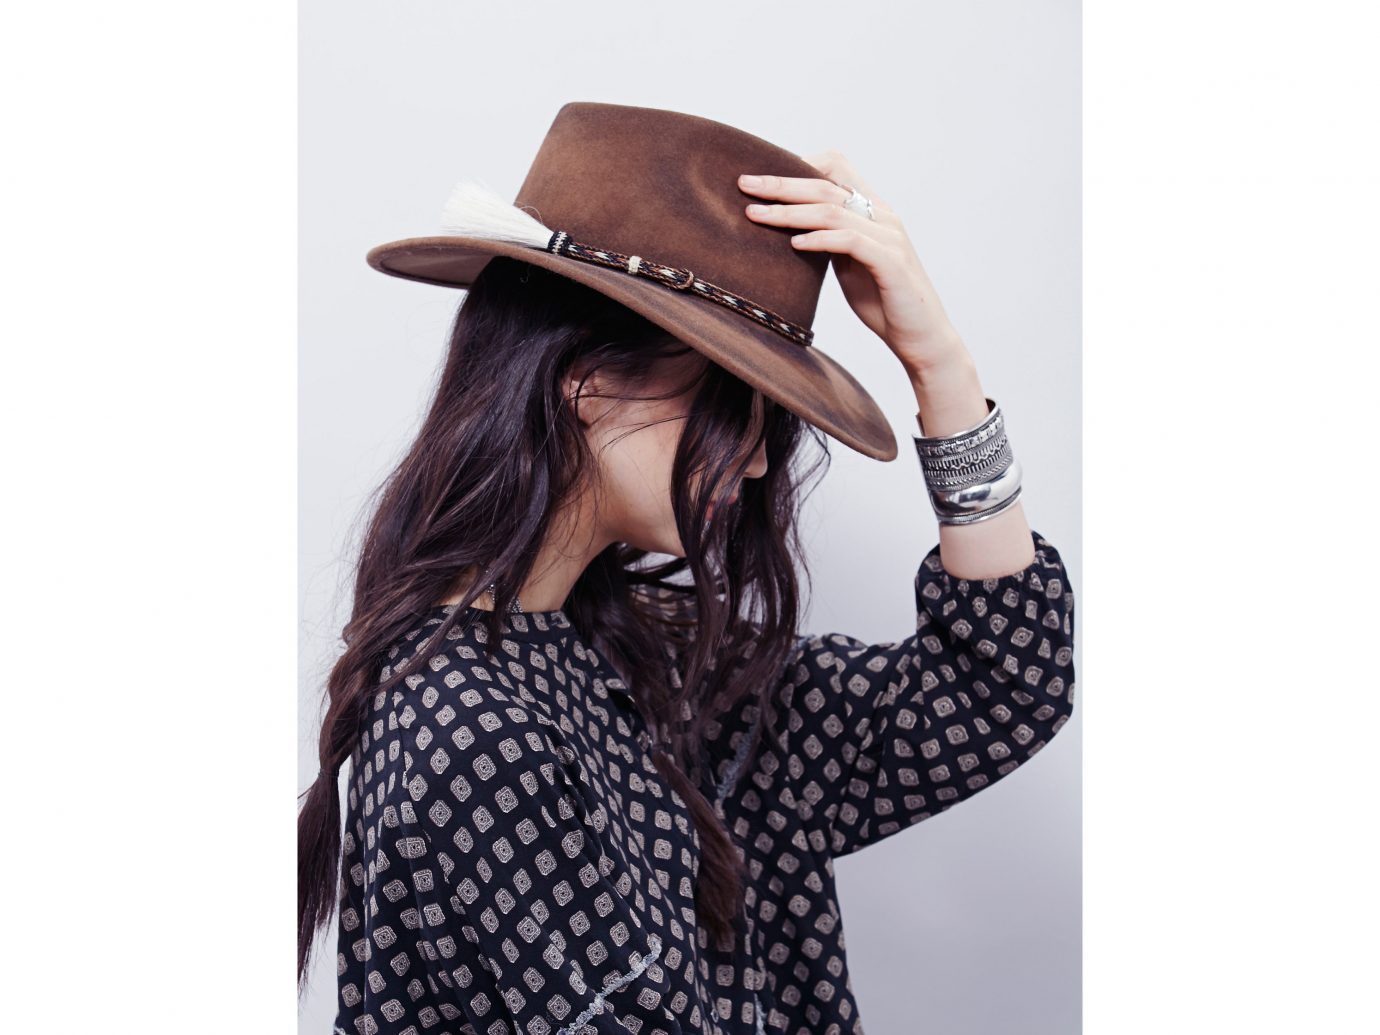 Style + Design person clothing woman hat cap pattern fashion accessory Design polka dot outerwear neck headgear fedora